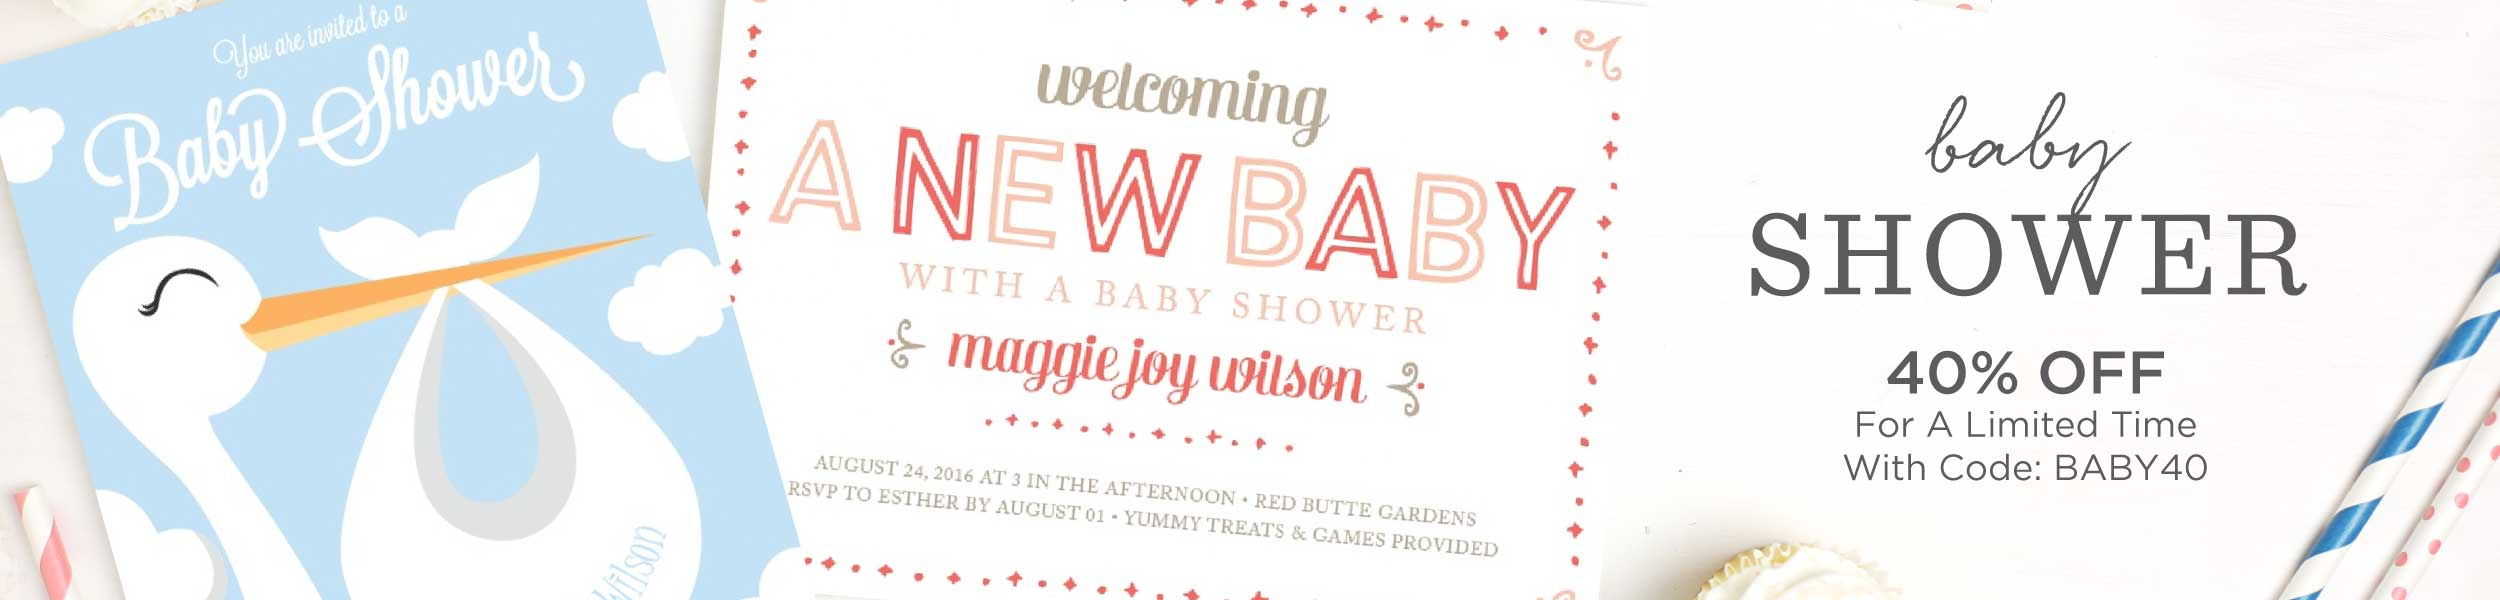 Baby Shower Invitations for Girls - Basic Invite